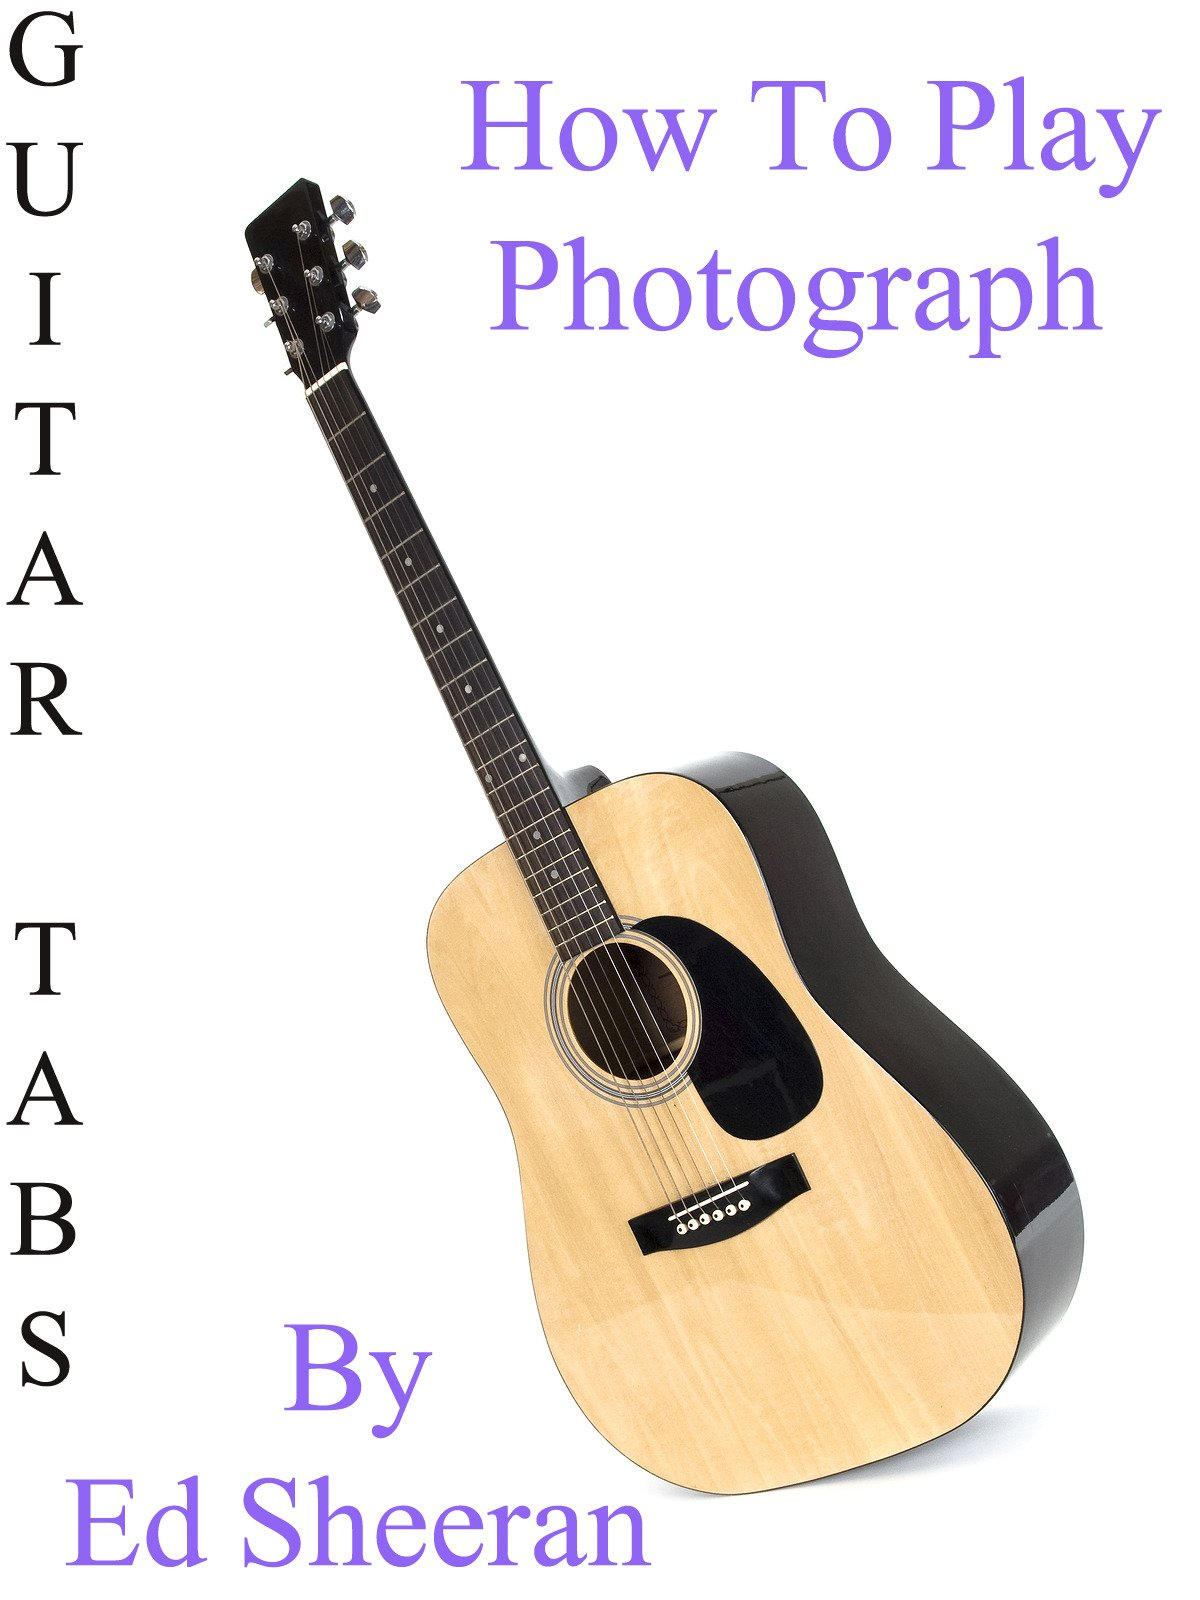 Amazon.com: How To Play Photograph By Ed Sheeran - Guitar Tabs ...